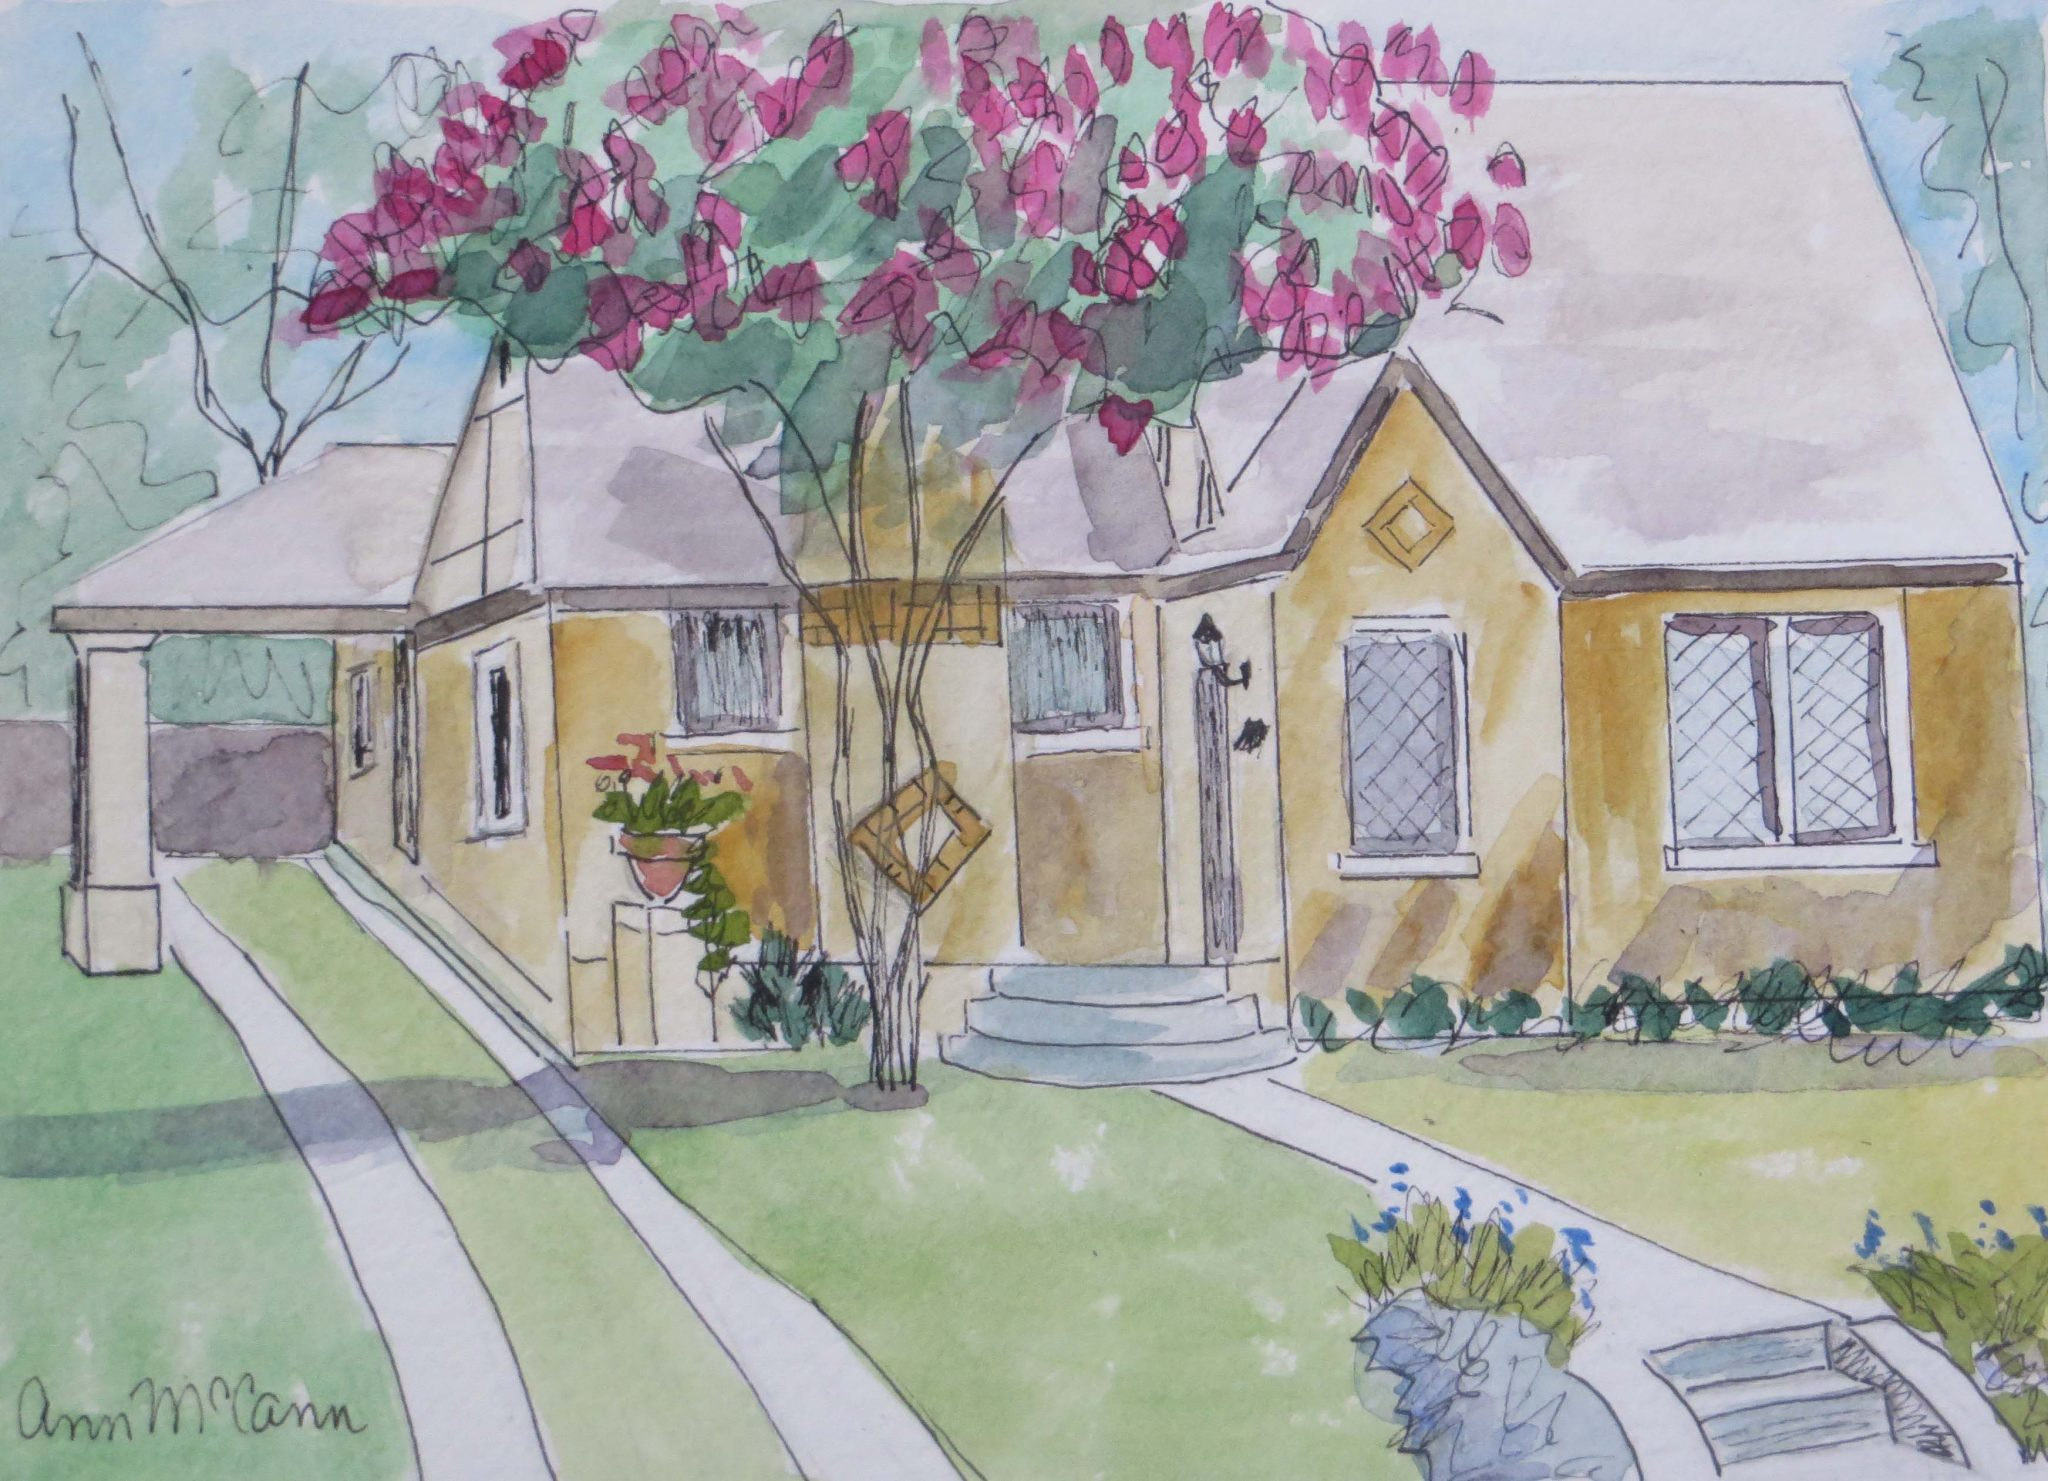 The home at 5219 Goodwin can be seen on the Vickery Place Home Tour. (Painting by ann McCann)